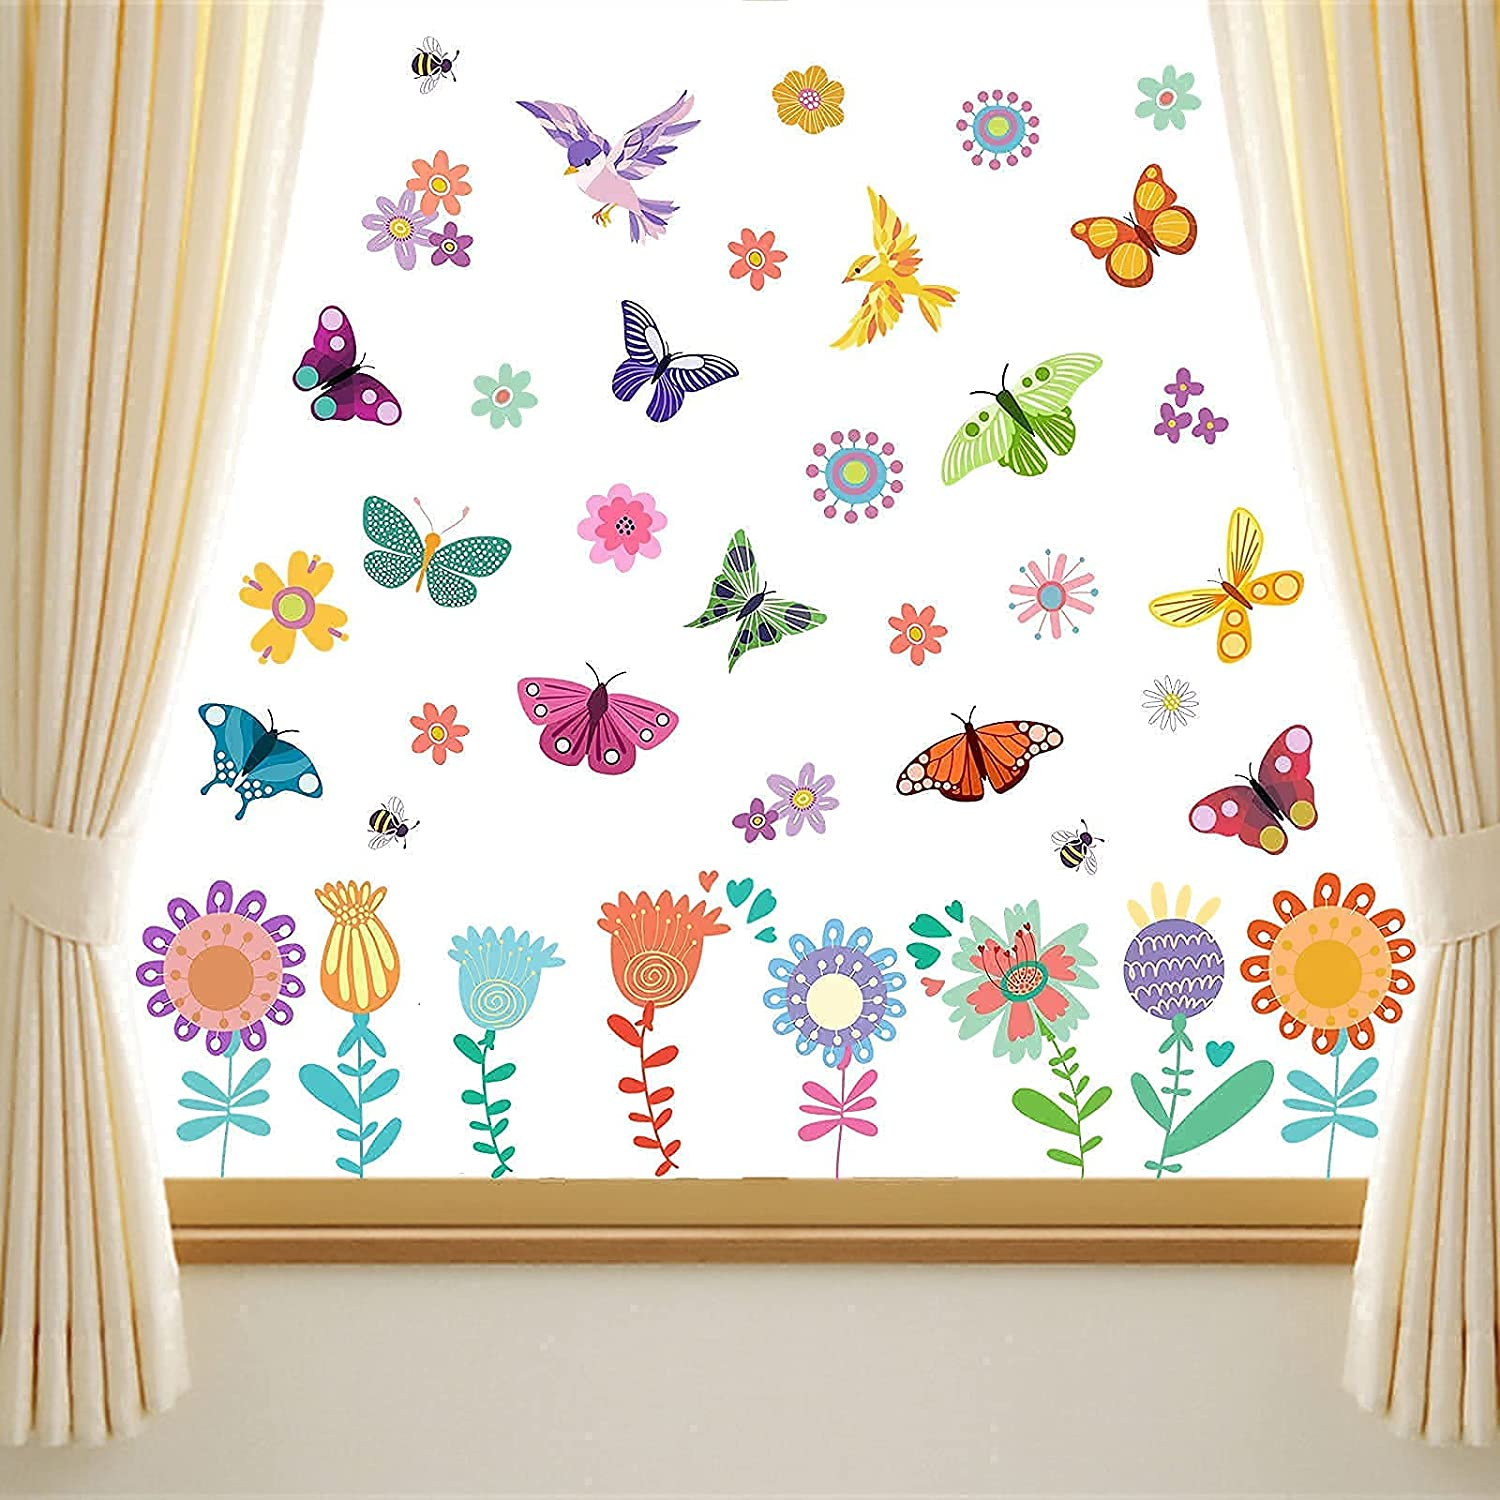 Yovkky Flower Window Clings 9 Sheets, Spring Summer Butterfly Wall Sticker Floral Bird Decal Anti-Collision Bee Botanical Plant Decor, Seasonal Home Kitchen Office Fridge Decorations Kids Party Supply